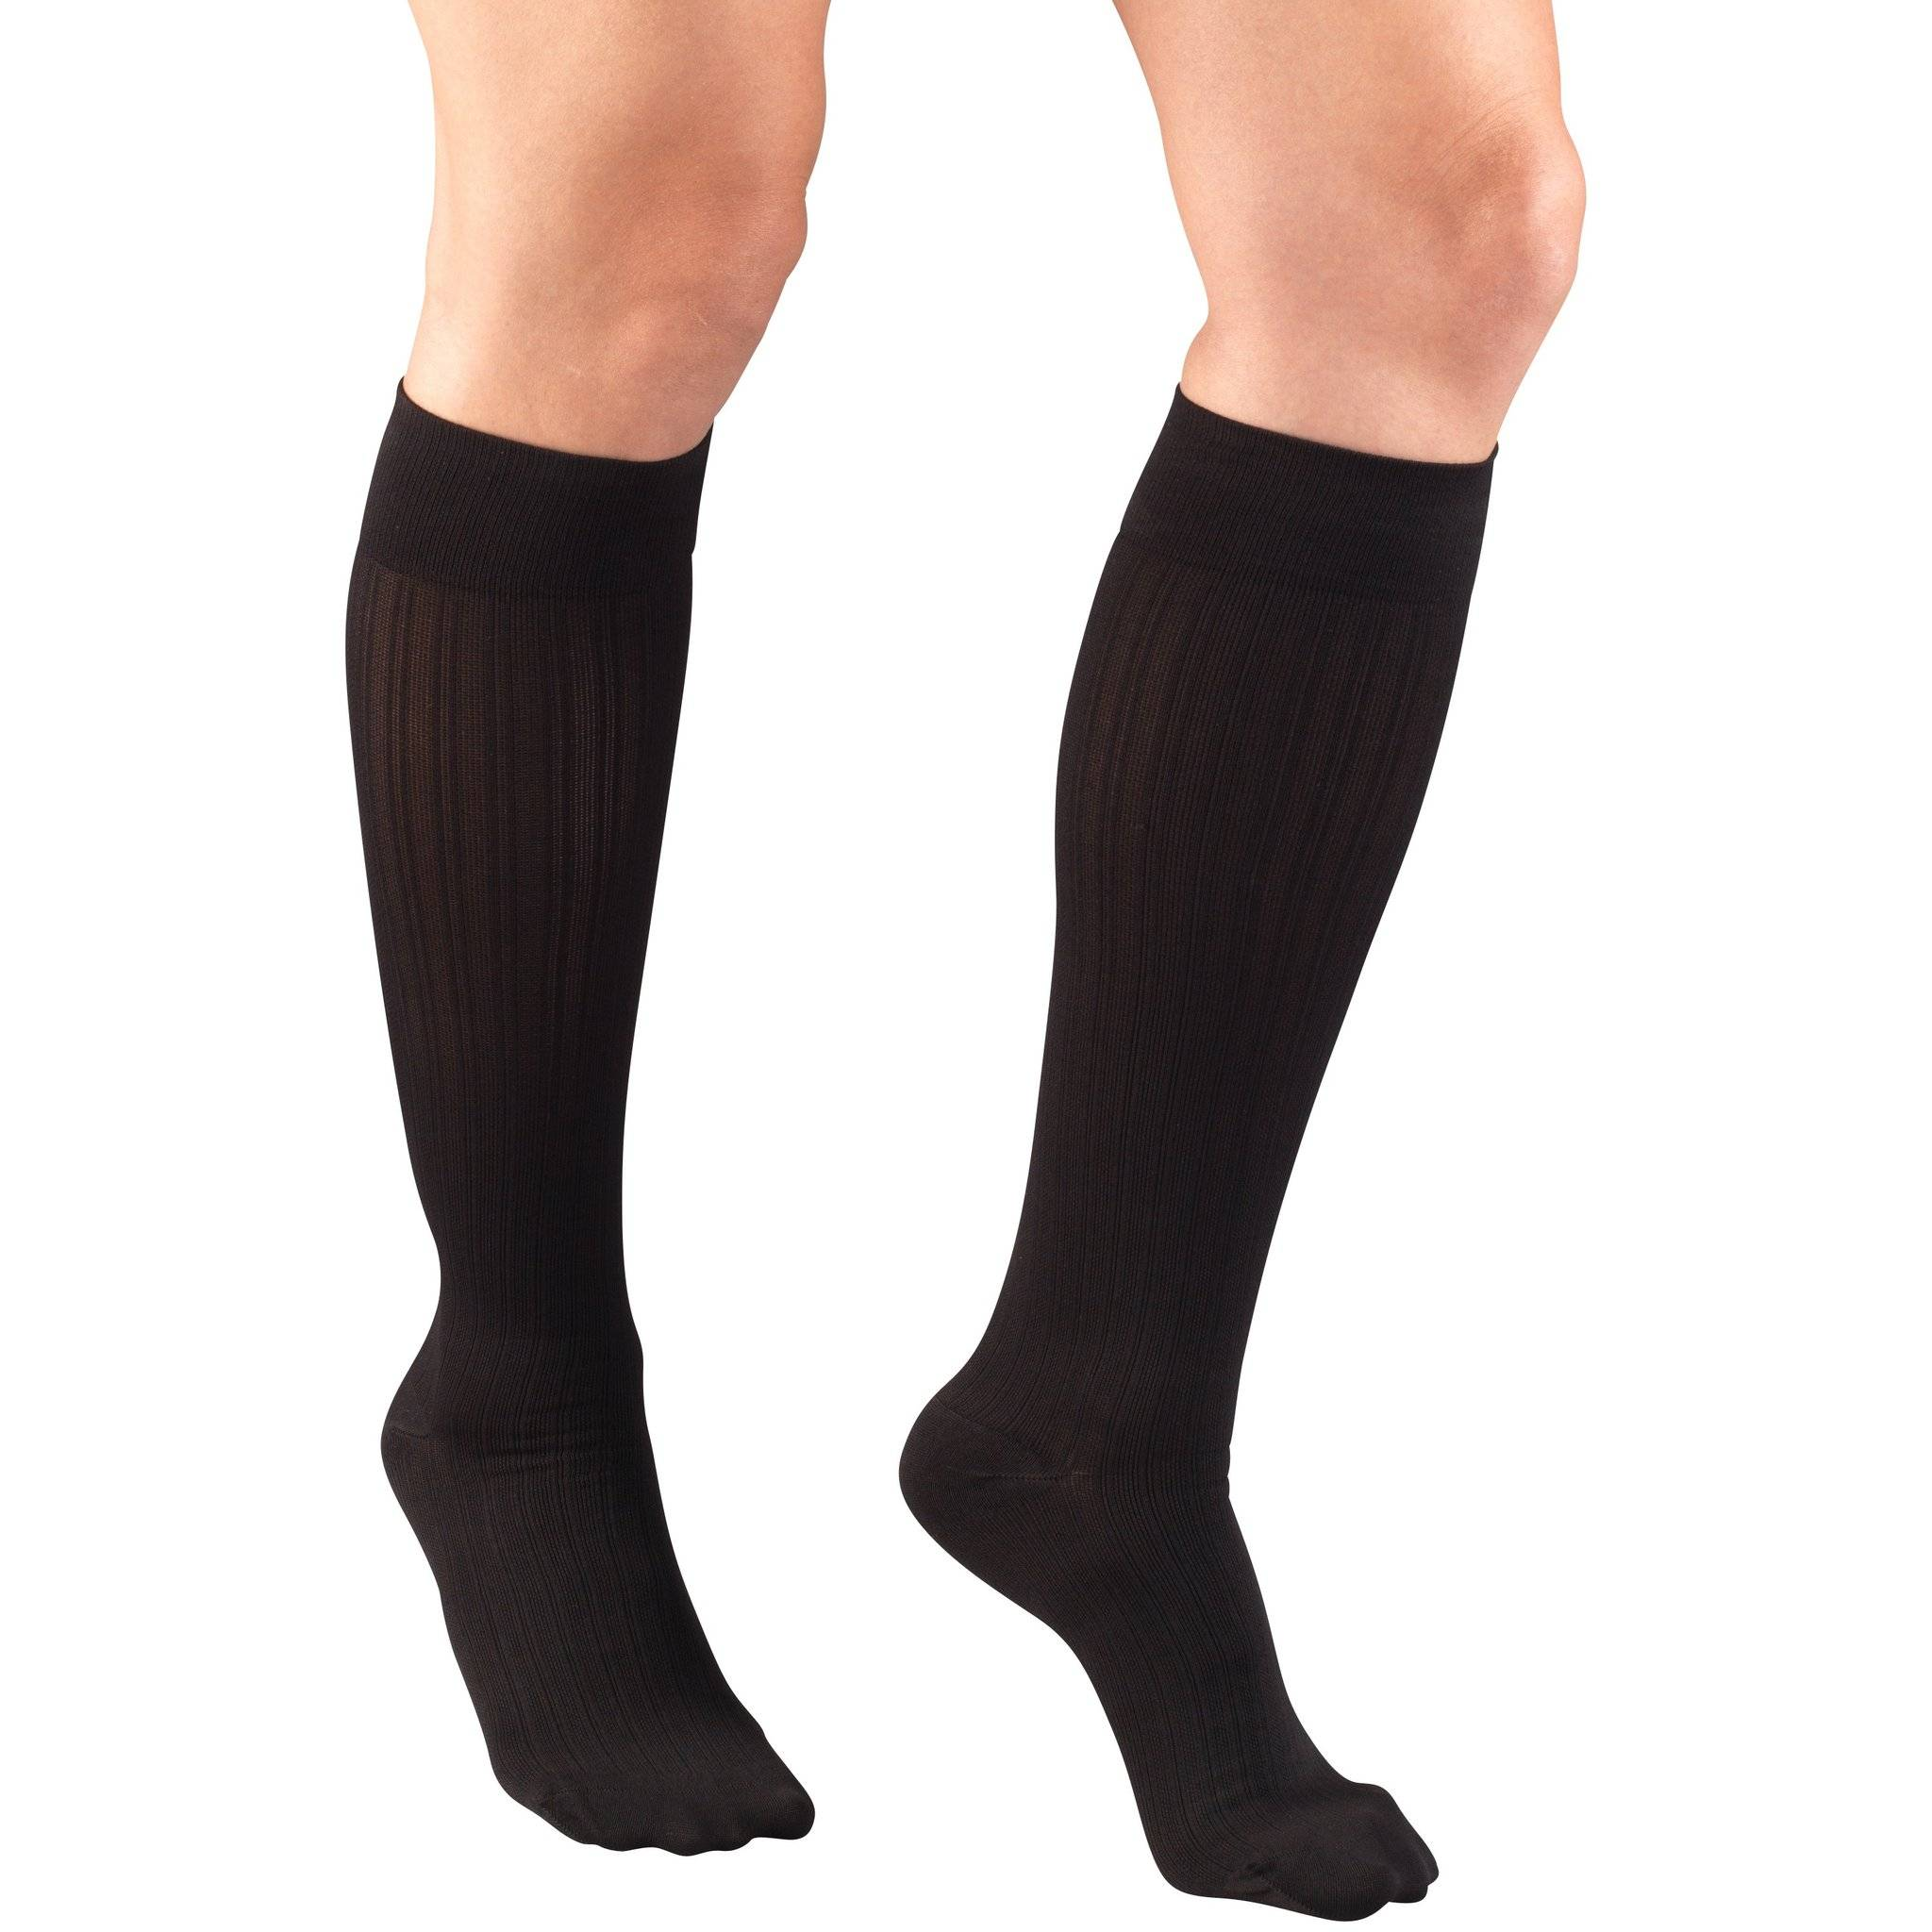 Ladies' Knee High Rib Pattern Socks